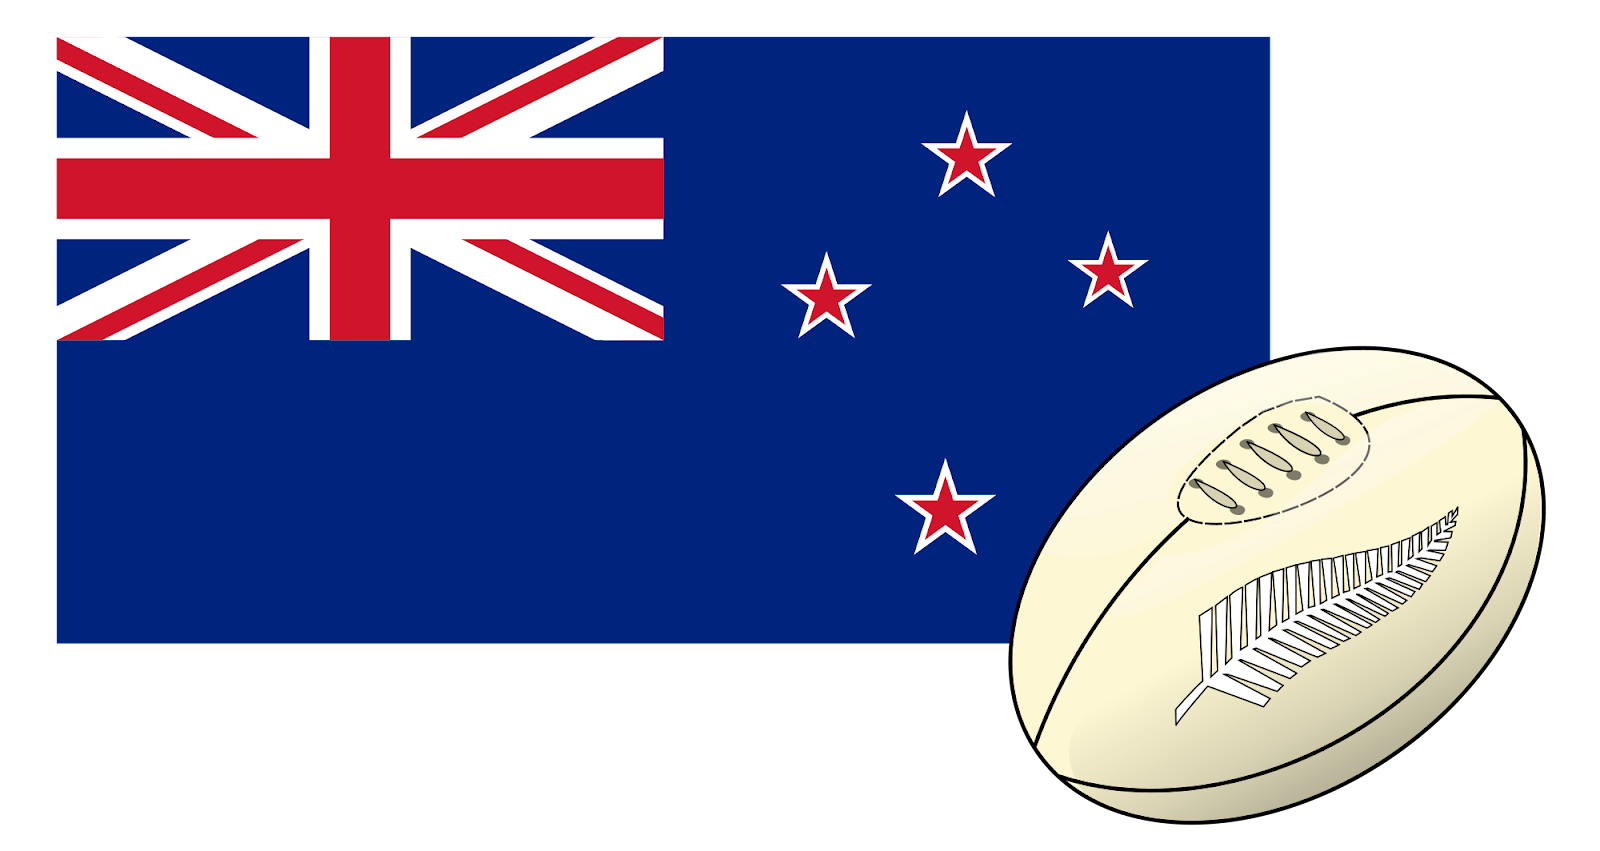 File:New Zealand flag rugby.svg - Wikimedia Commons